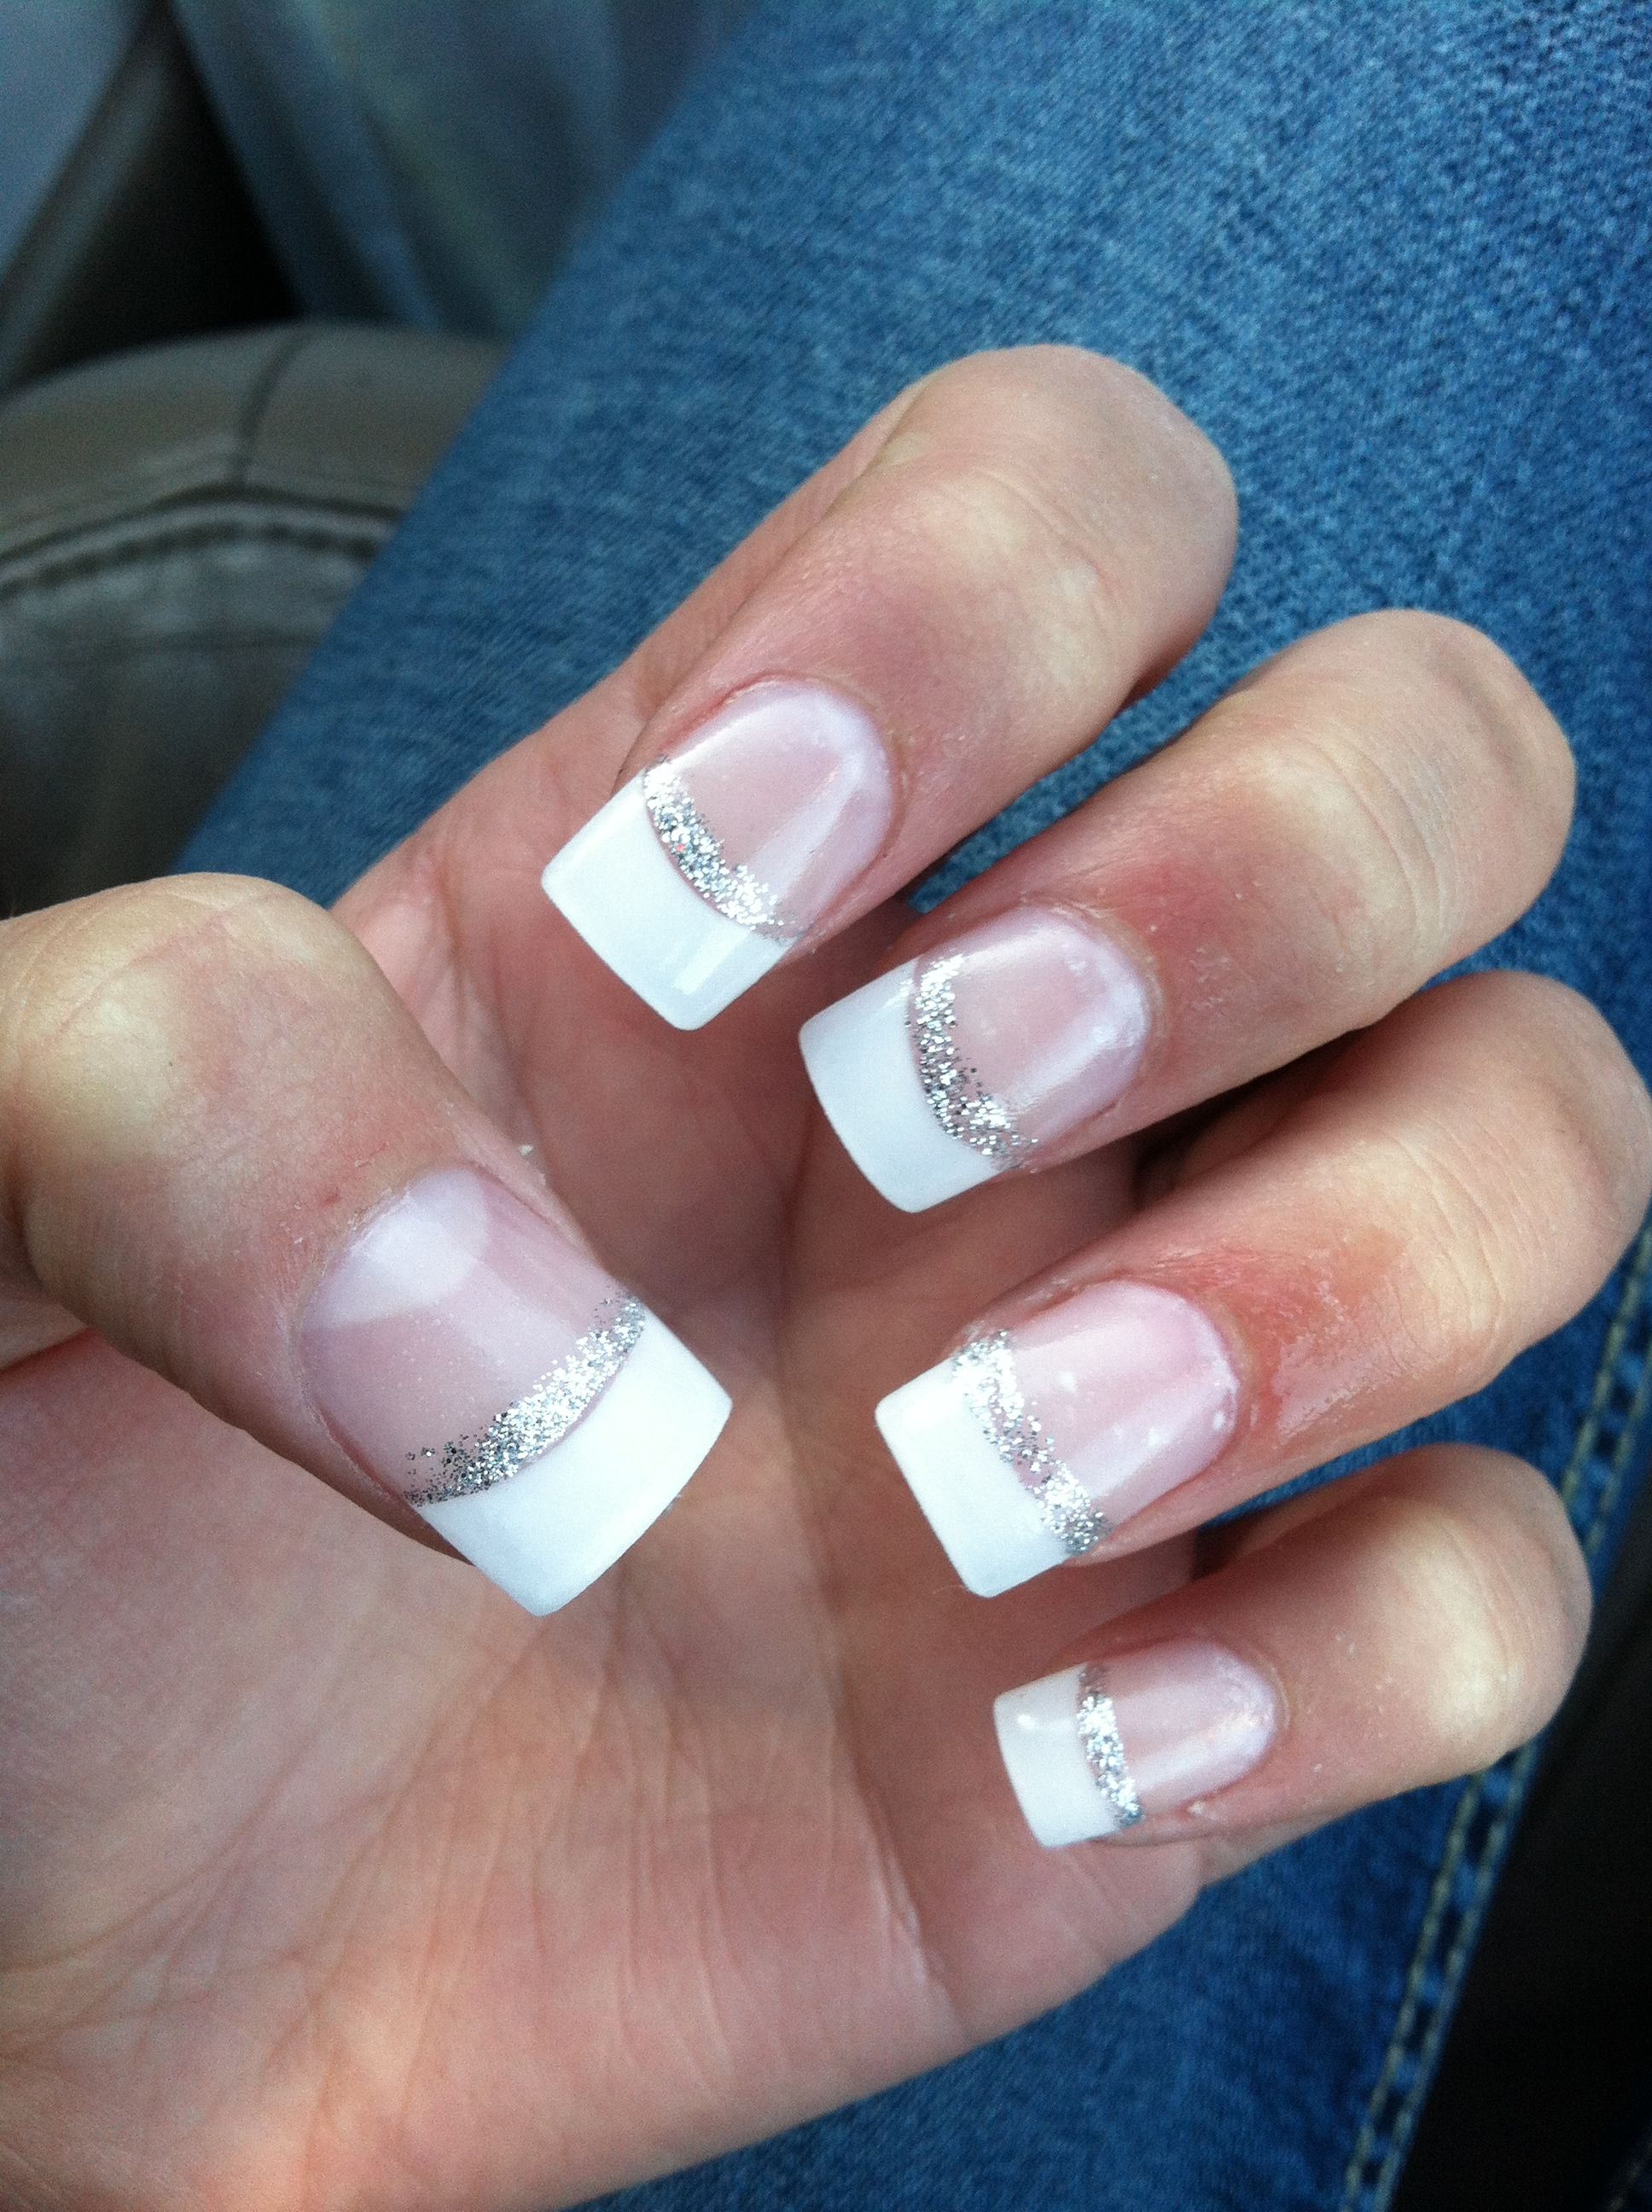 My Prom nails.. French tips with glitter :D - Nails | Pinterest